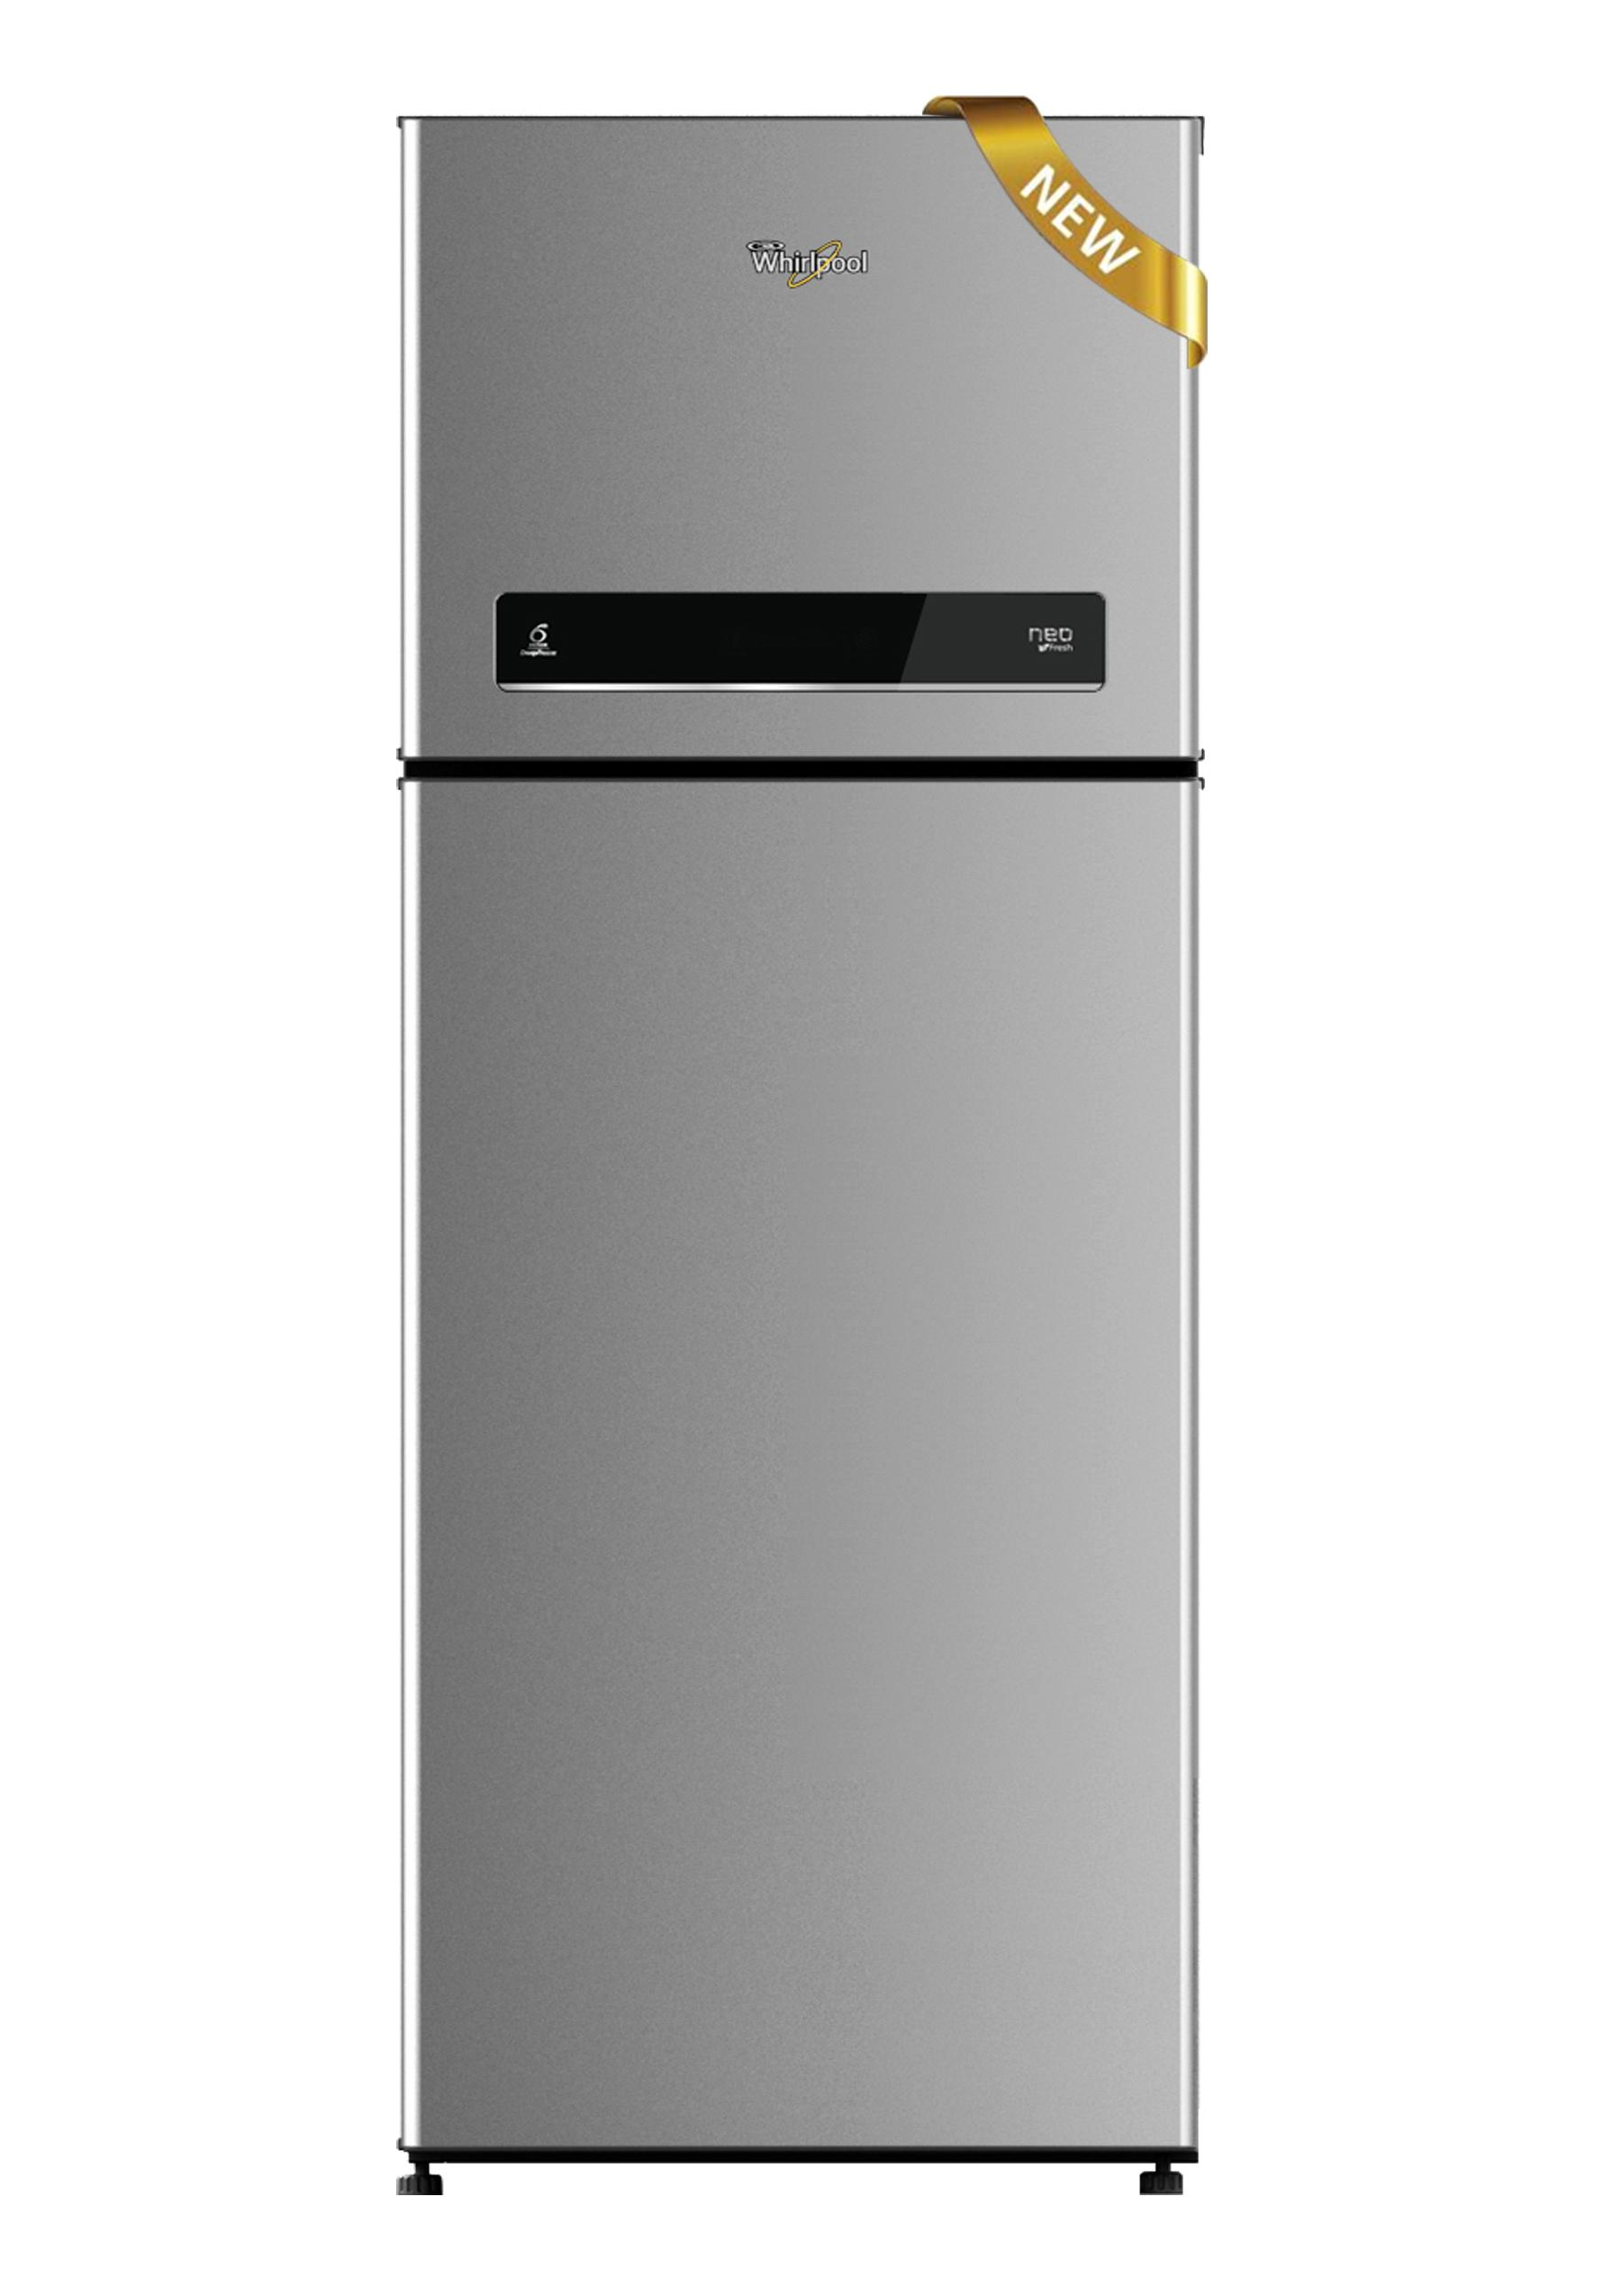 Whirlpool 245 L Frost Free Double Door Refrigerator (NEO FR258 CLS PLUS 2S) Image